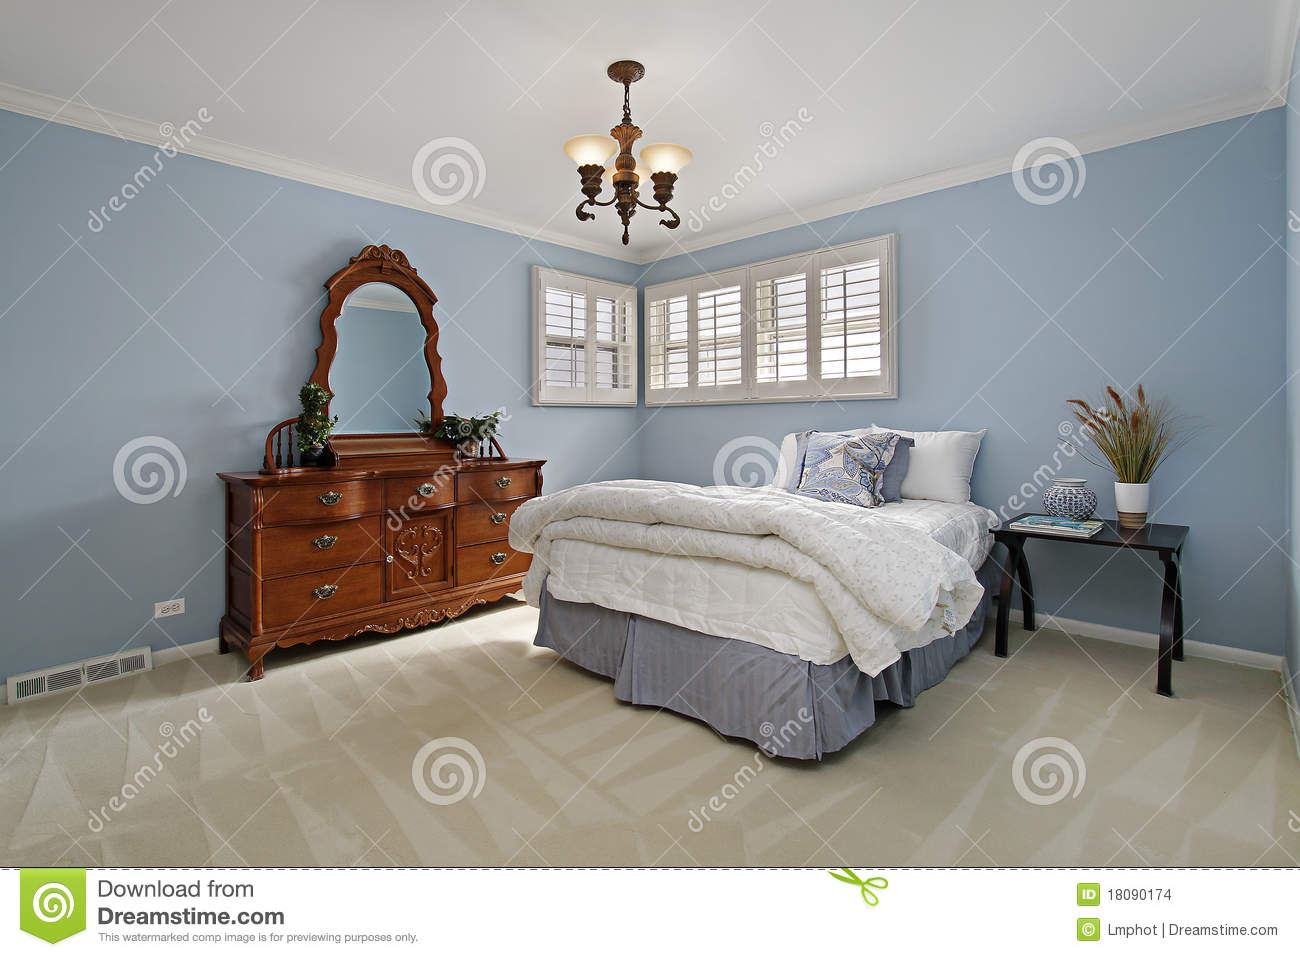 master bedroom with light blue walls stock images image 18090174. Black Bedroom Furniture Sets. Home Design Ideas